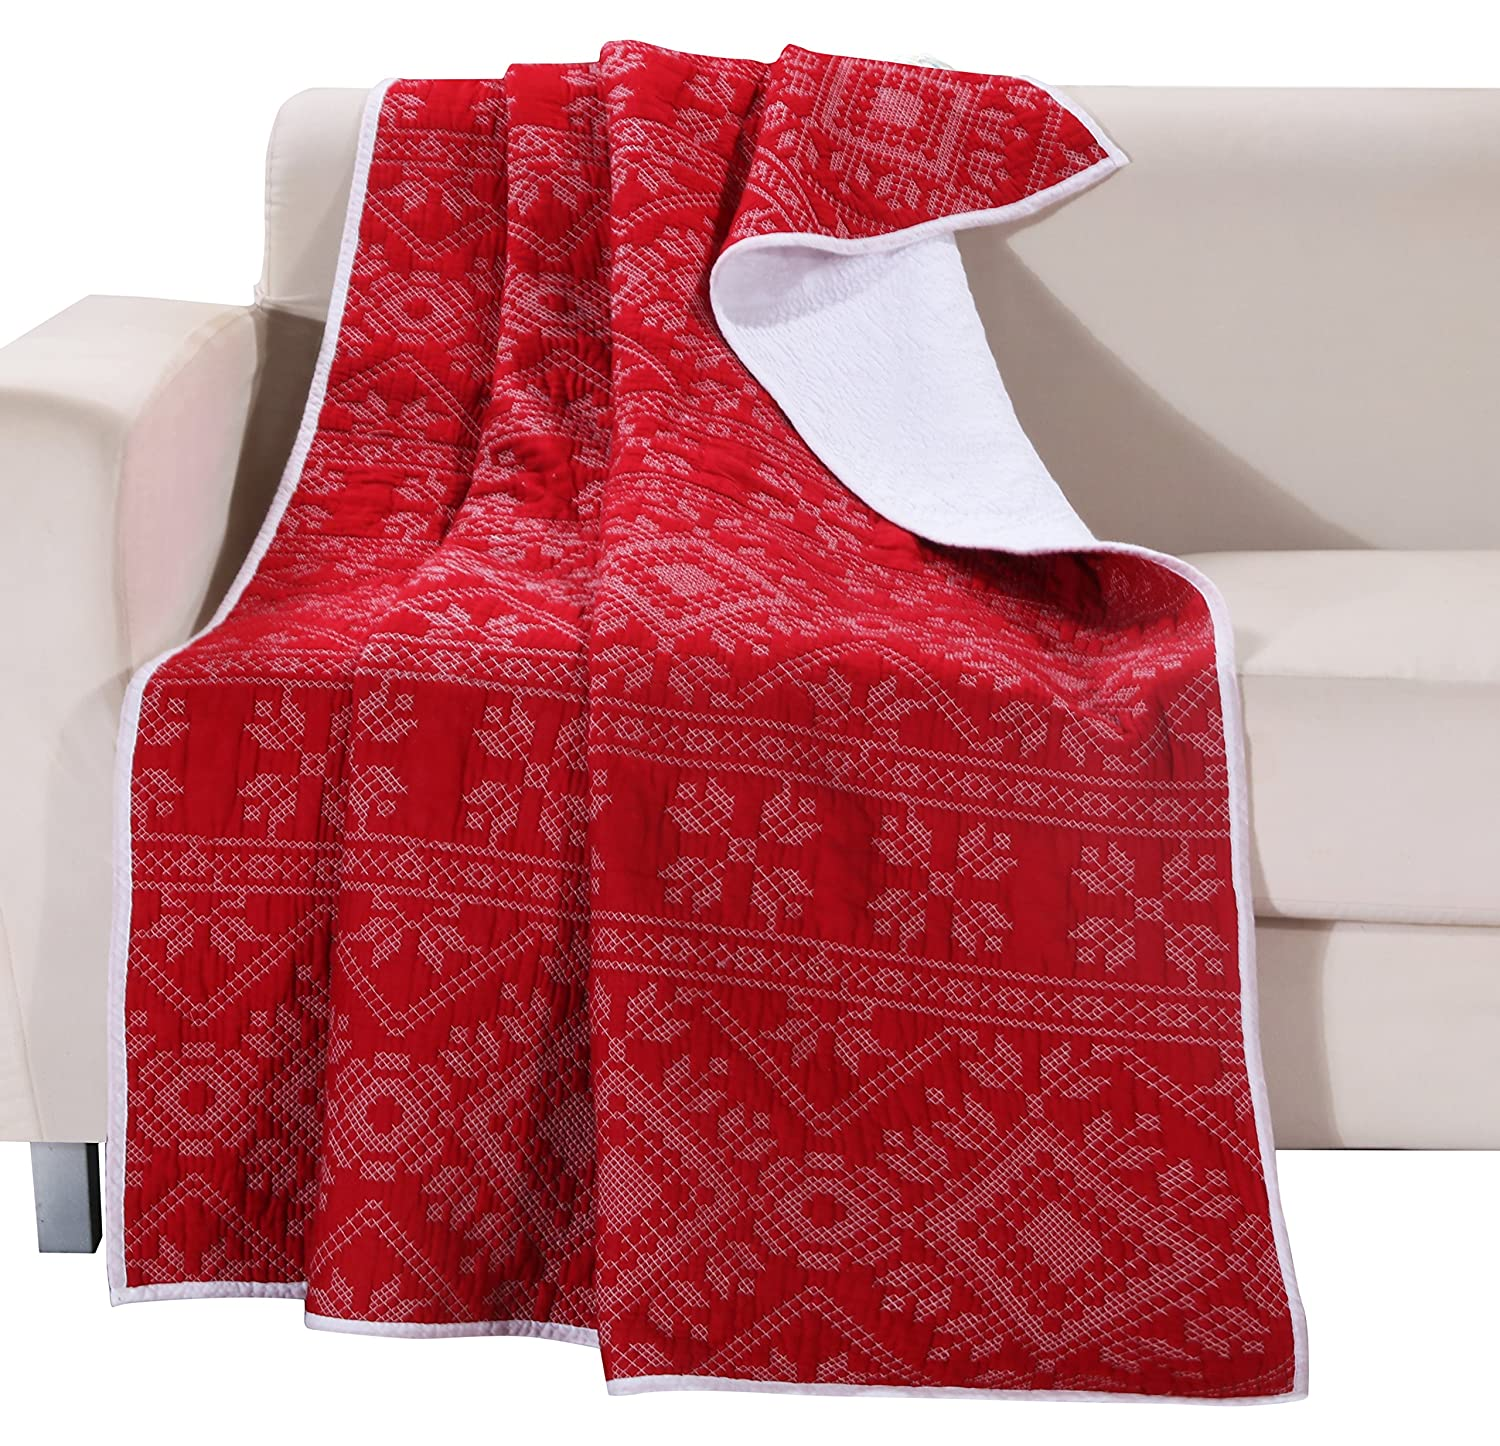 Greenland Home Holly Quilted Cotton Throw with Cross Stitching, Red